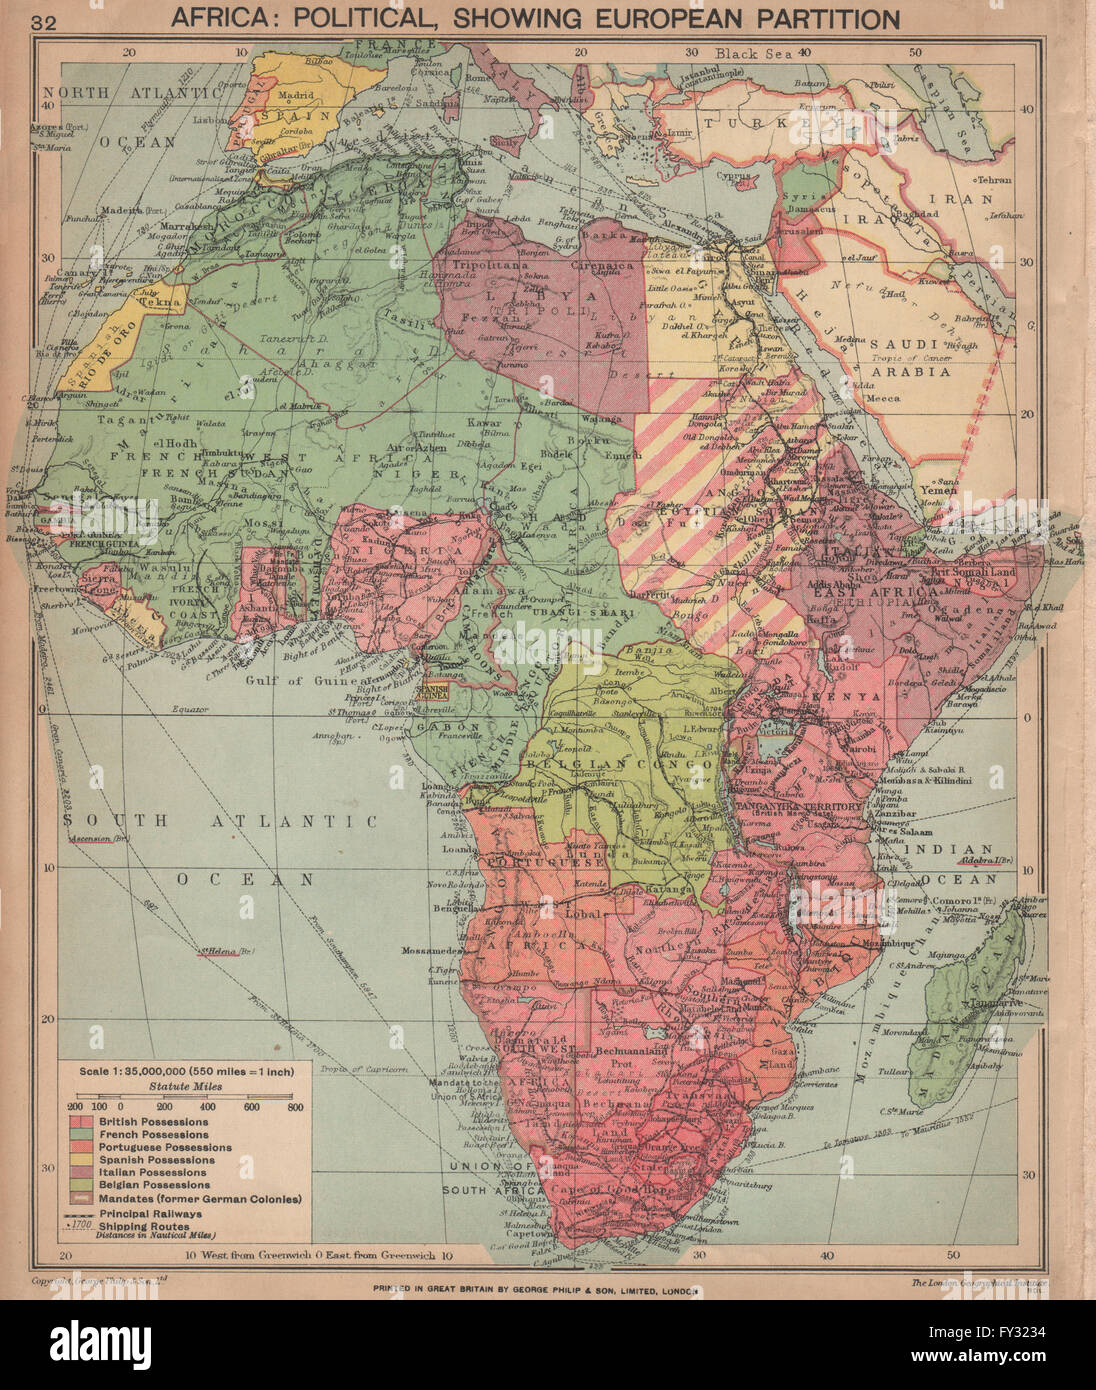 Africa Map Cities%0A SECOND WORLD WAR AFRICA Showing European colonies German